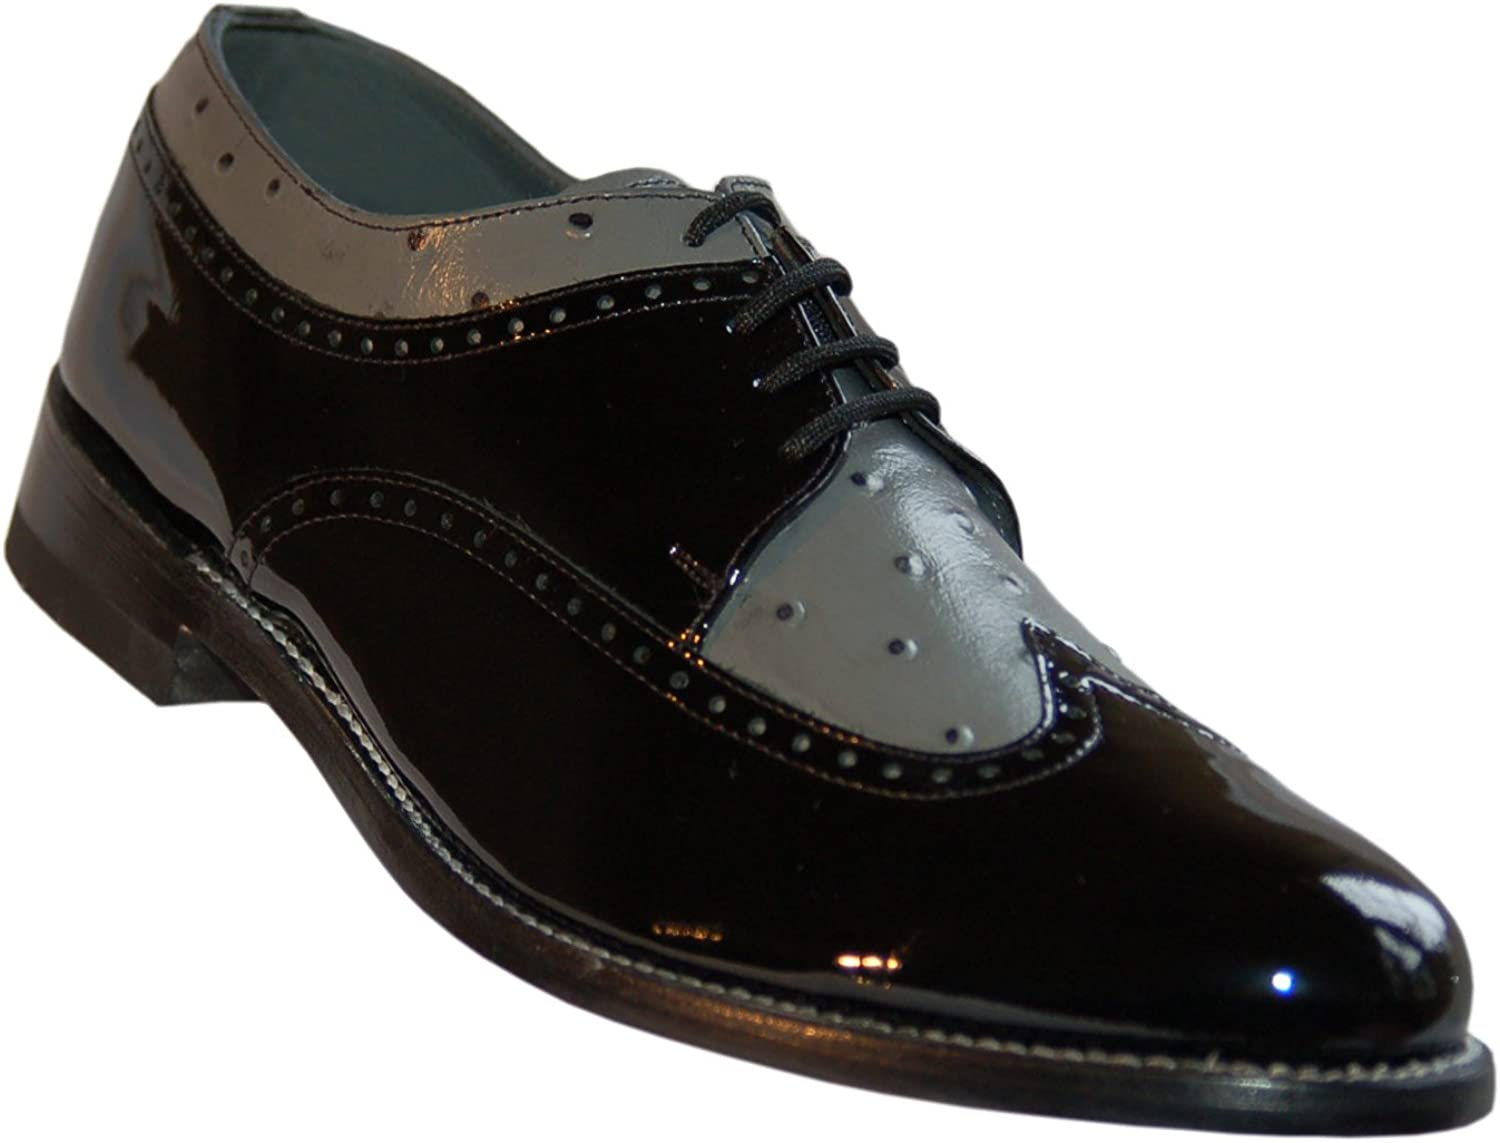 Stacy Baldwin Black and Grey Wingtip Spectator Two Tone Oxfords Leather shoes with Leather Soles_